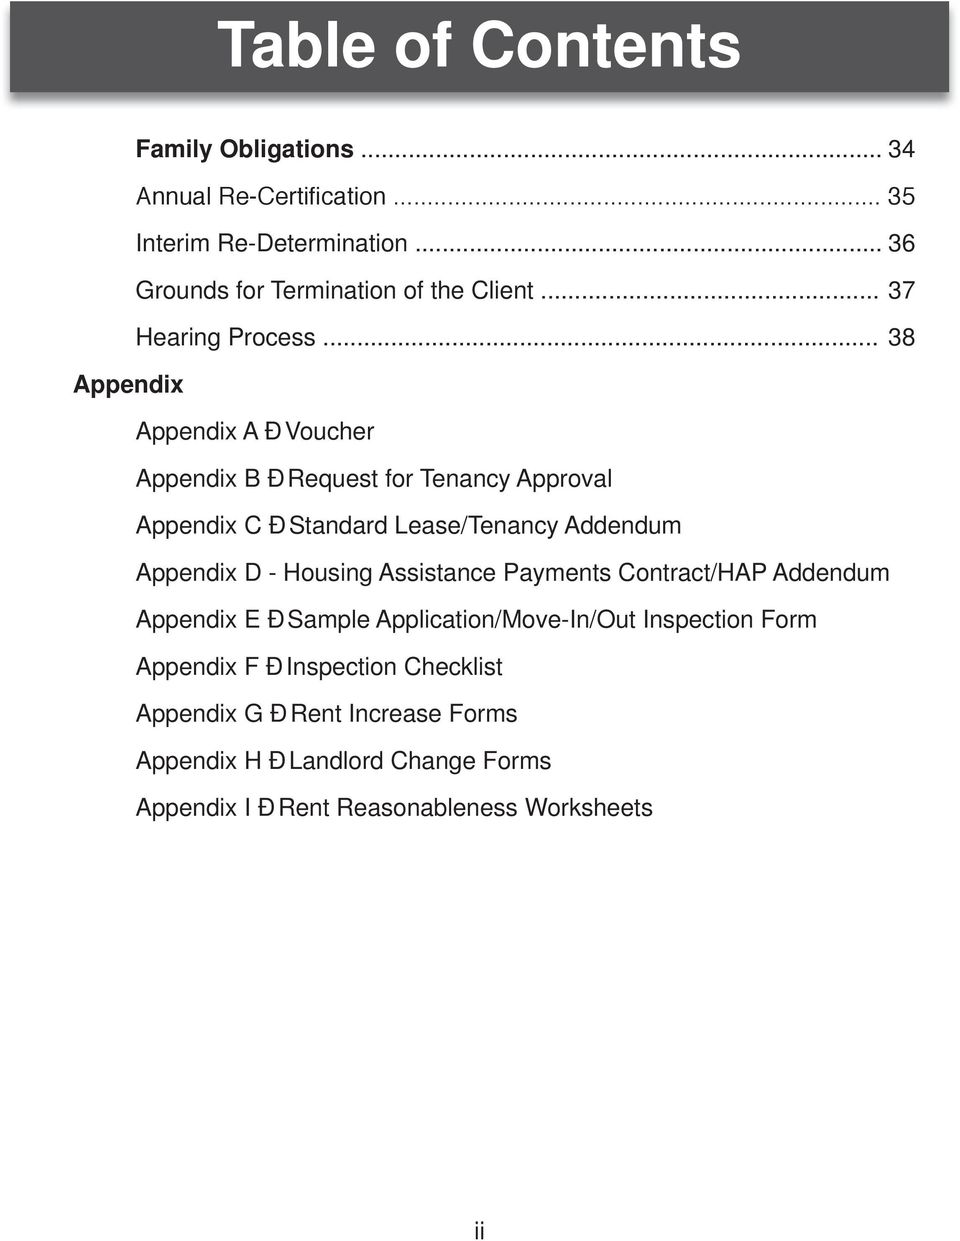 .. 38 Appendix Appendix A Ð Voucher Appendix B Ð Request for Tenancy Approval Appendix C Ð Standard Lease/Tenancy Addendum Appendix D -